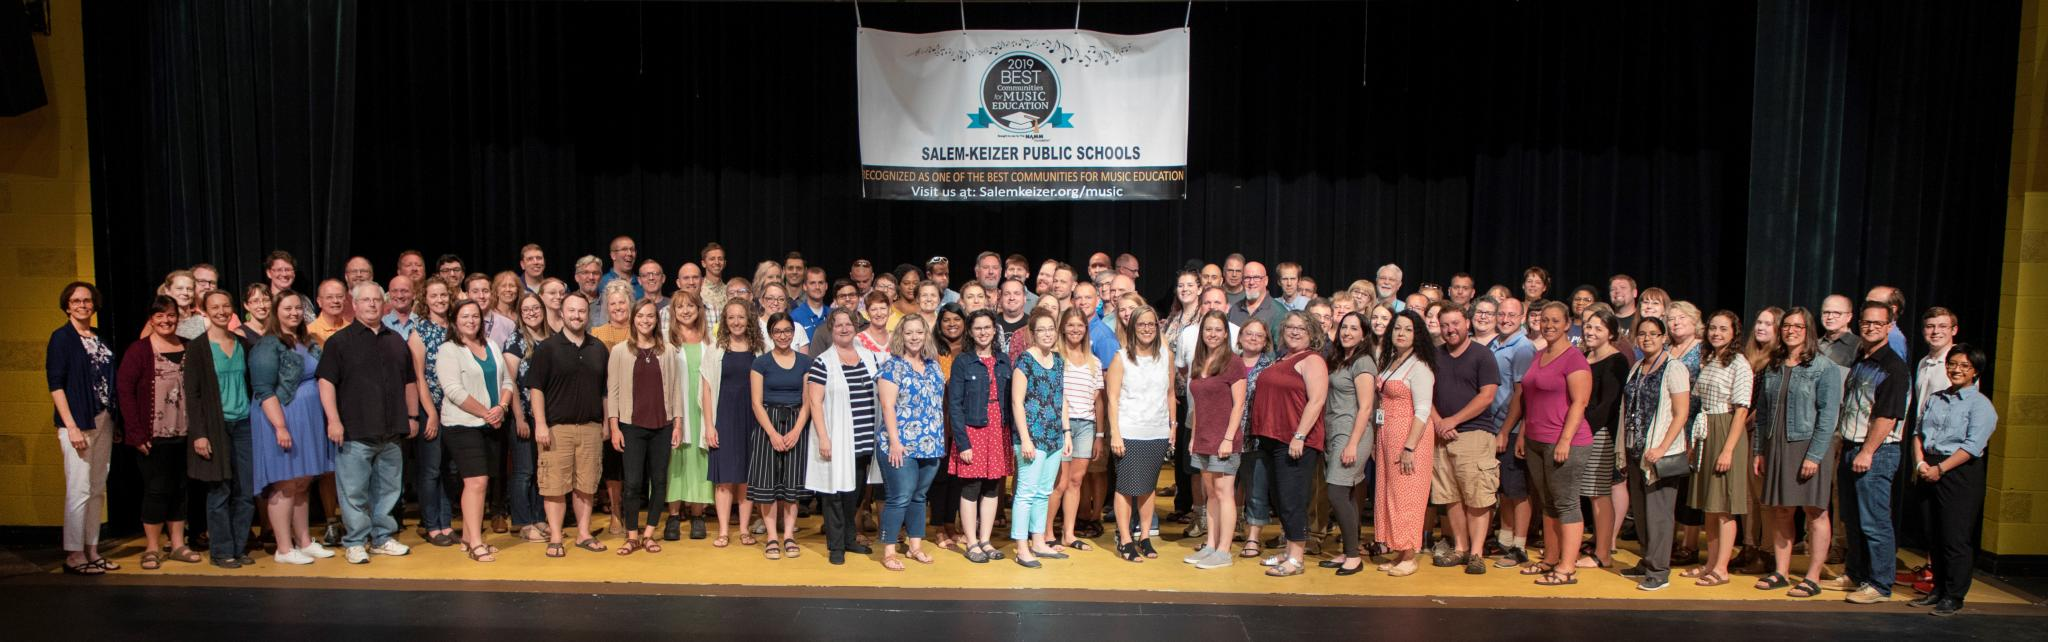 2019-20 Music Department Staff Grouped together on a stage